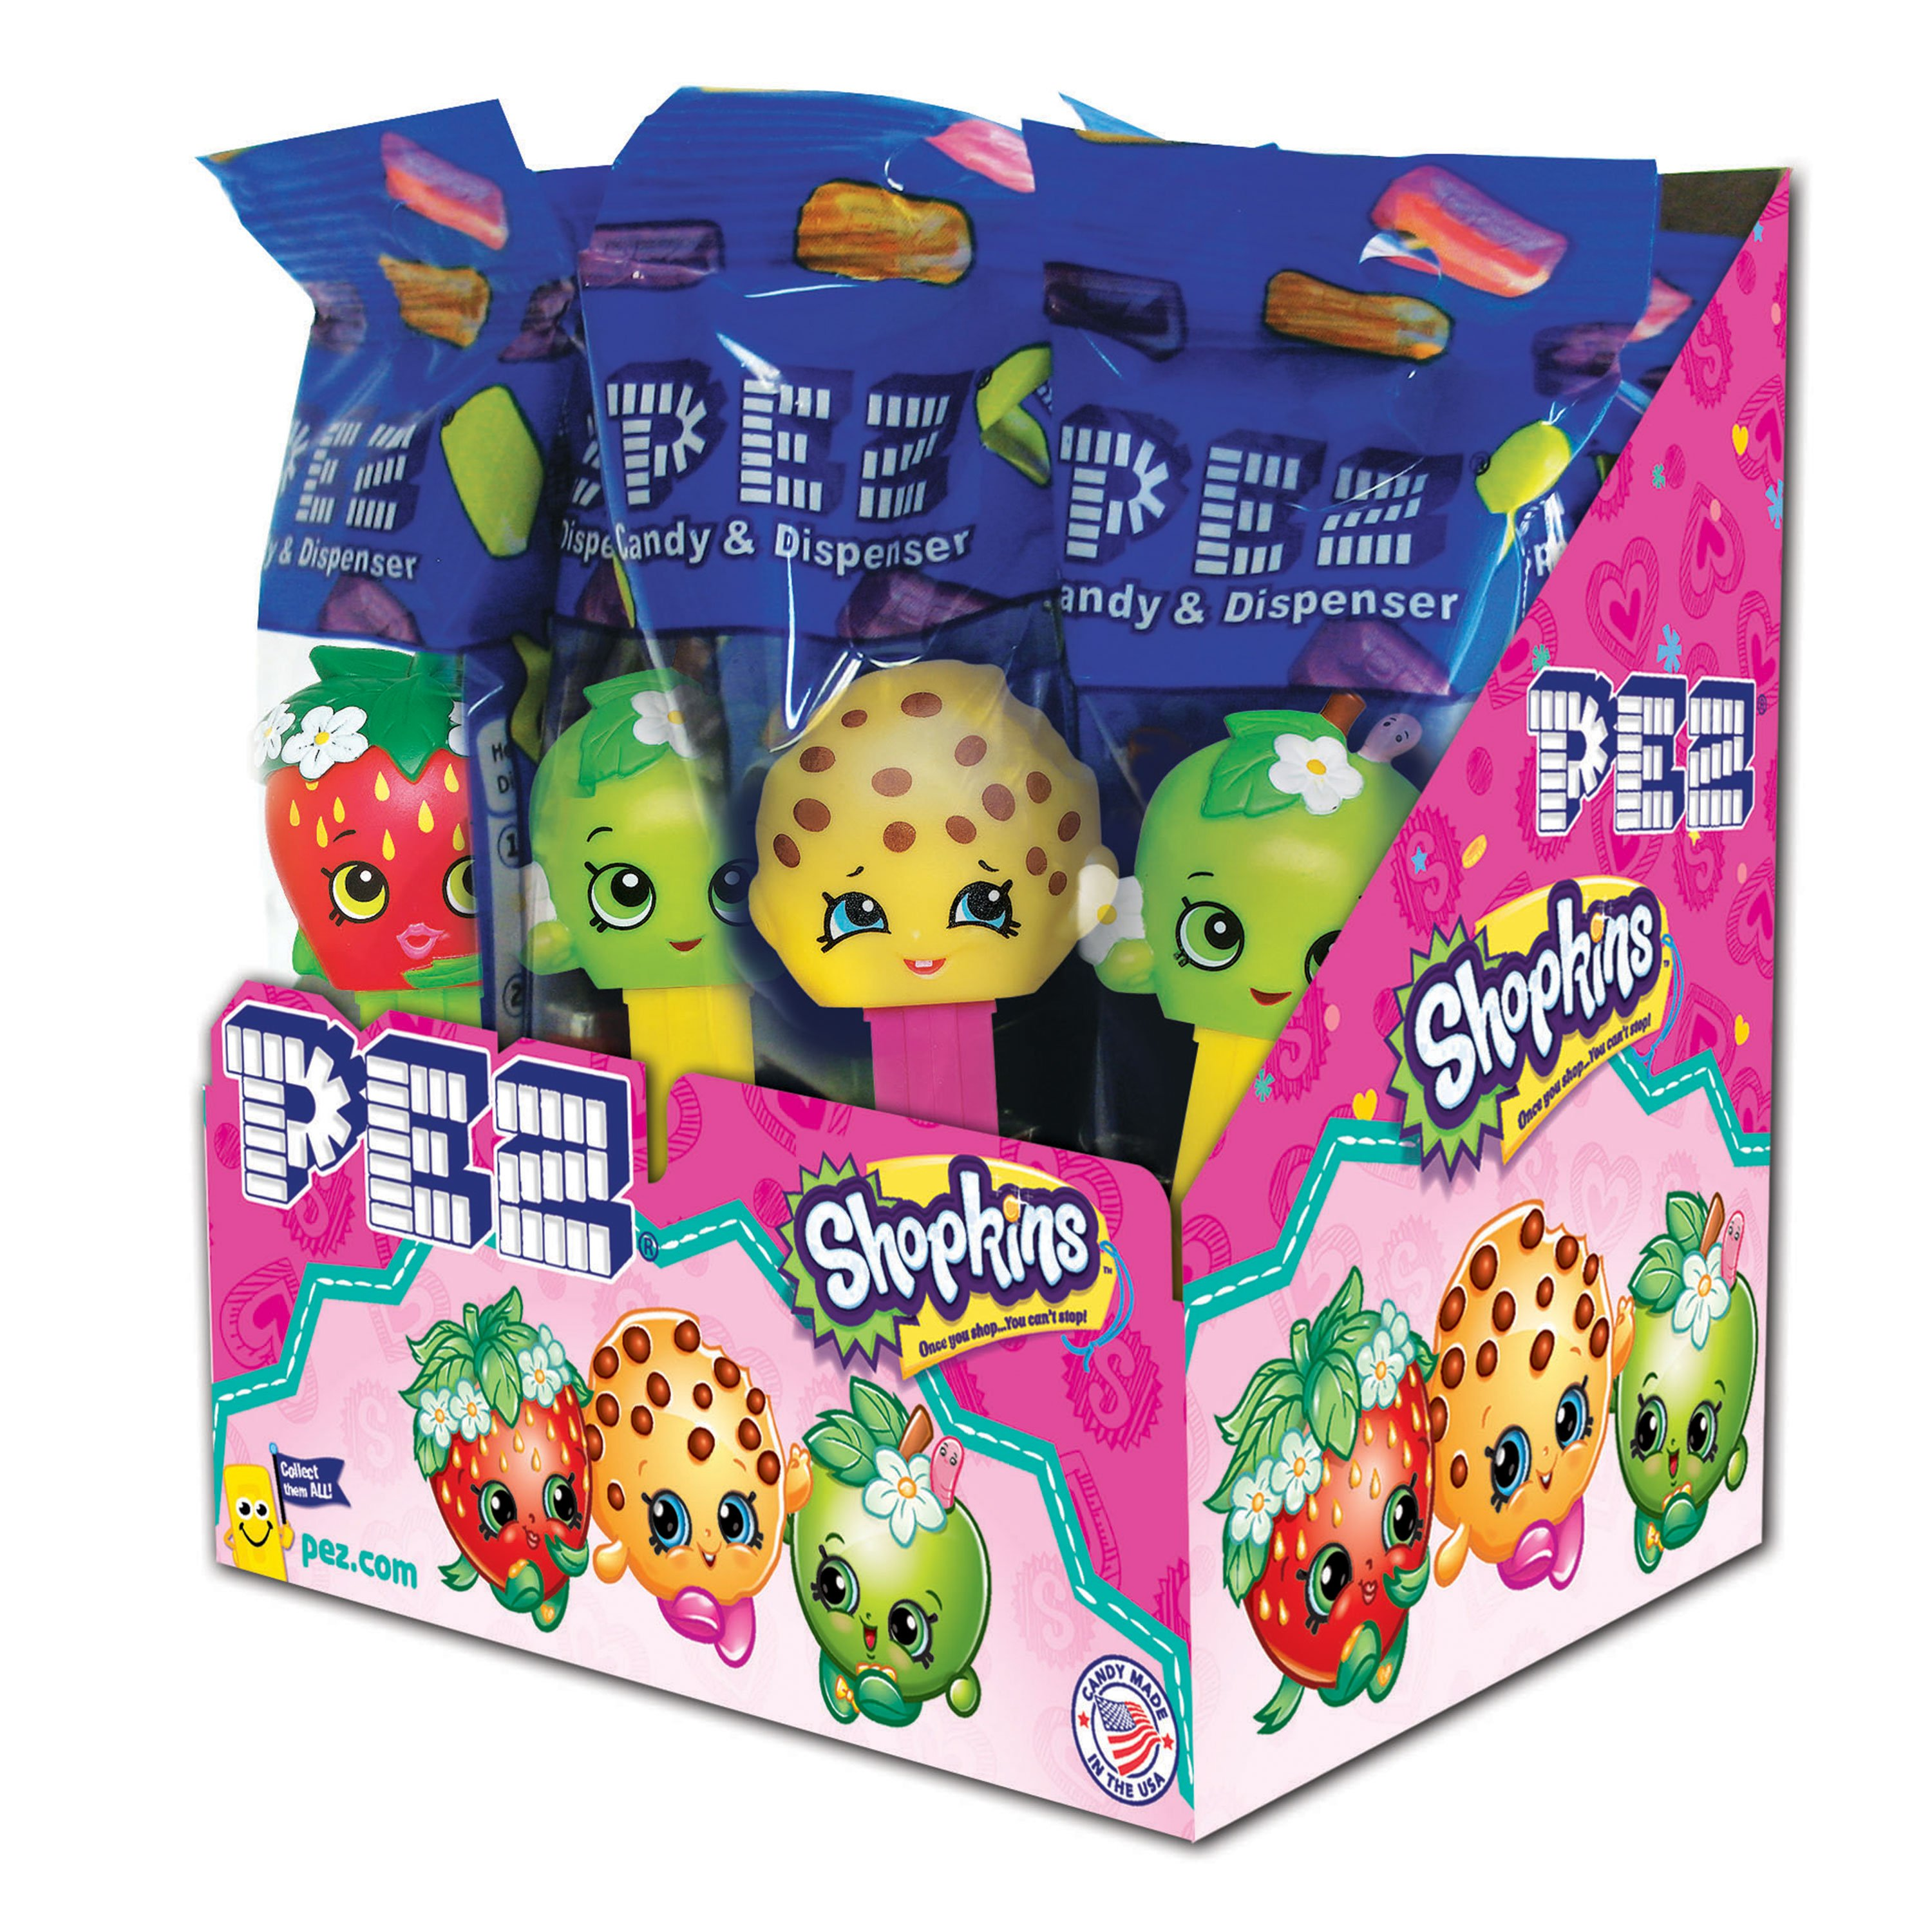 PEZ Candy Shopkins Assortment, candy dispenser plus 2 rolls of assorted fruit candy, box of 12